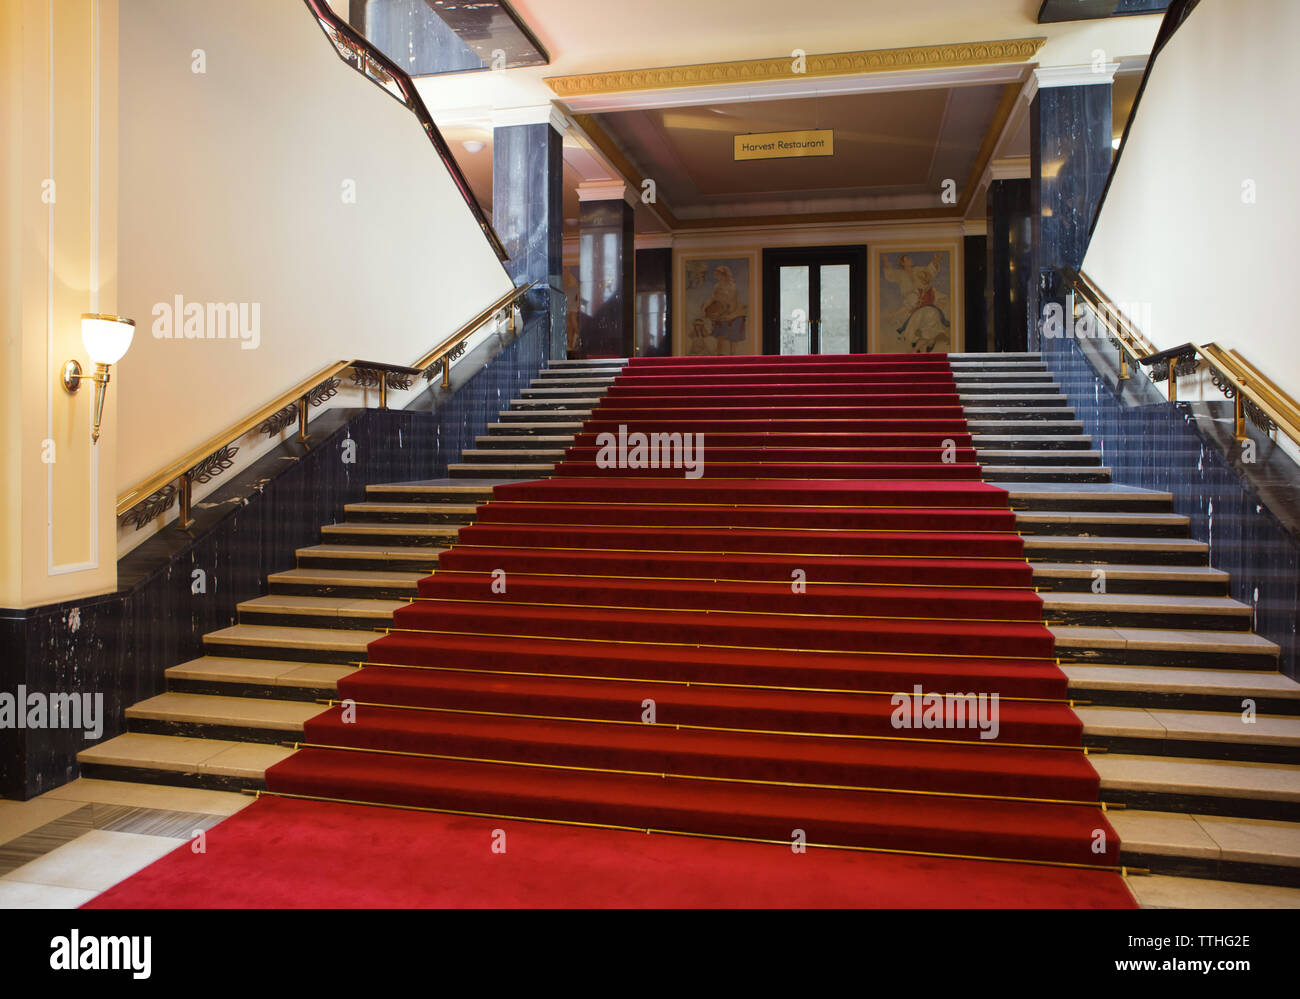 Main staircase in the Hotel International in Dejvice district in Prague, Czech Republic. The hotel inspired by Soviet Stalinist architecture was designed by Czech architect František Jeřábek and built in 1952-1956. The staircase railing was designed and manufactured by Czech artist Jan Nušl. According to the local legend, Czechoslovak army generals should guard on each step of the staircase as a guard of honour when Soviet dictator Joseph Stalin goes up the staircase during his official visit to Czechoslovakia. This is why the staircase has 22 steps, one step for two of 44 Czechoslovak Stock Photo